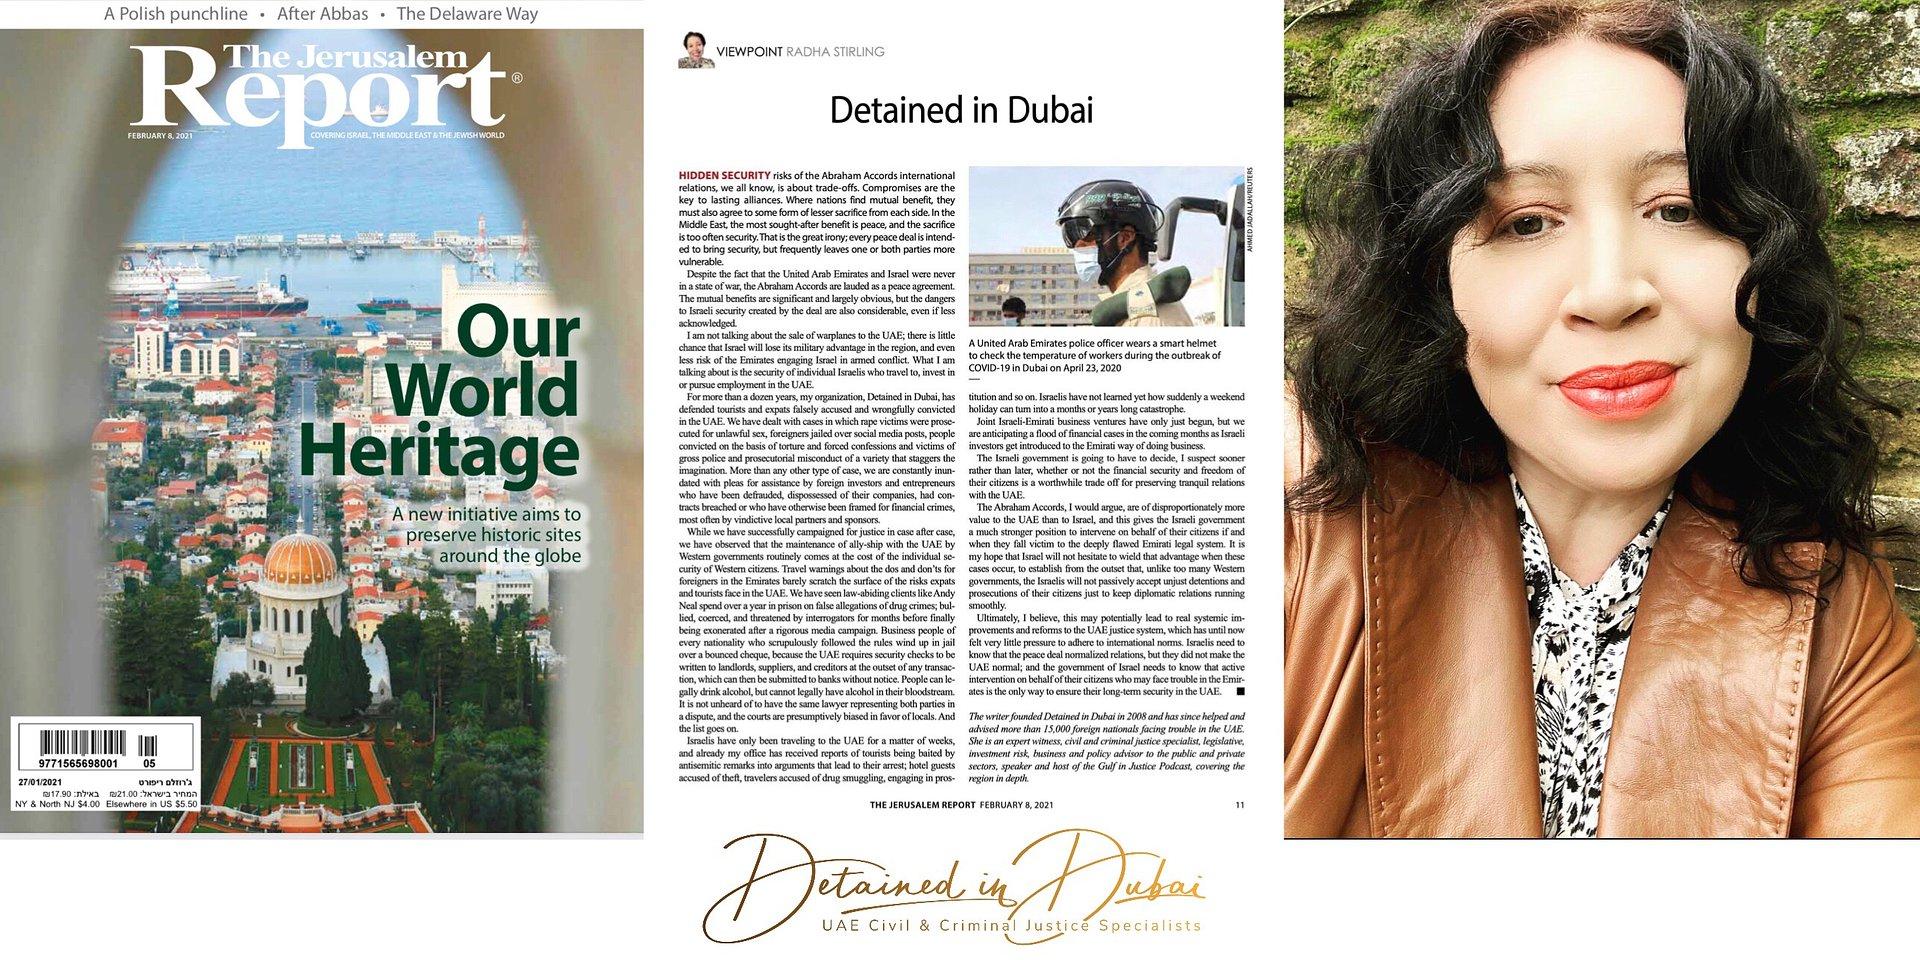 Detained in Dubai - by Radha Stirling - The Jerusalem Report